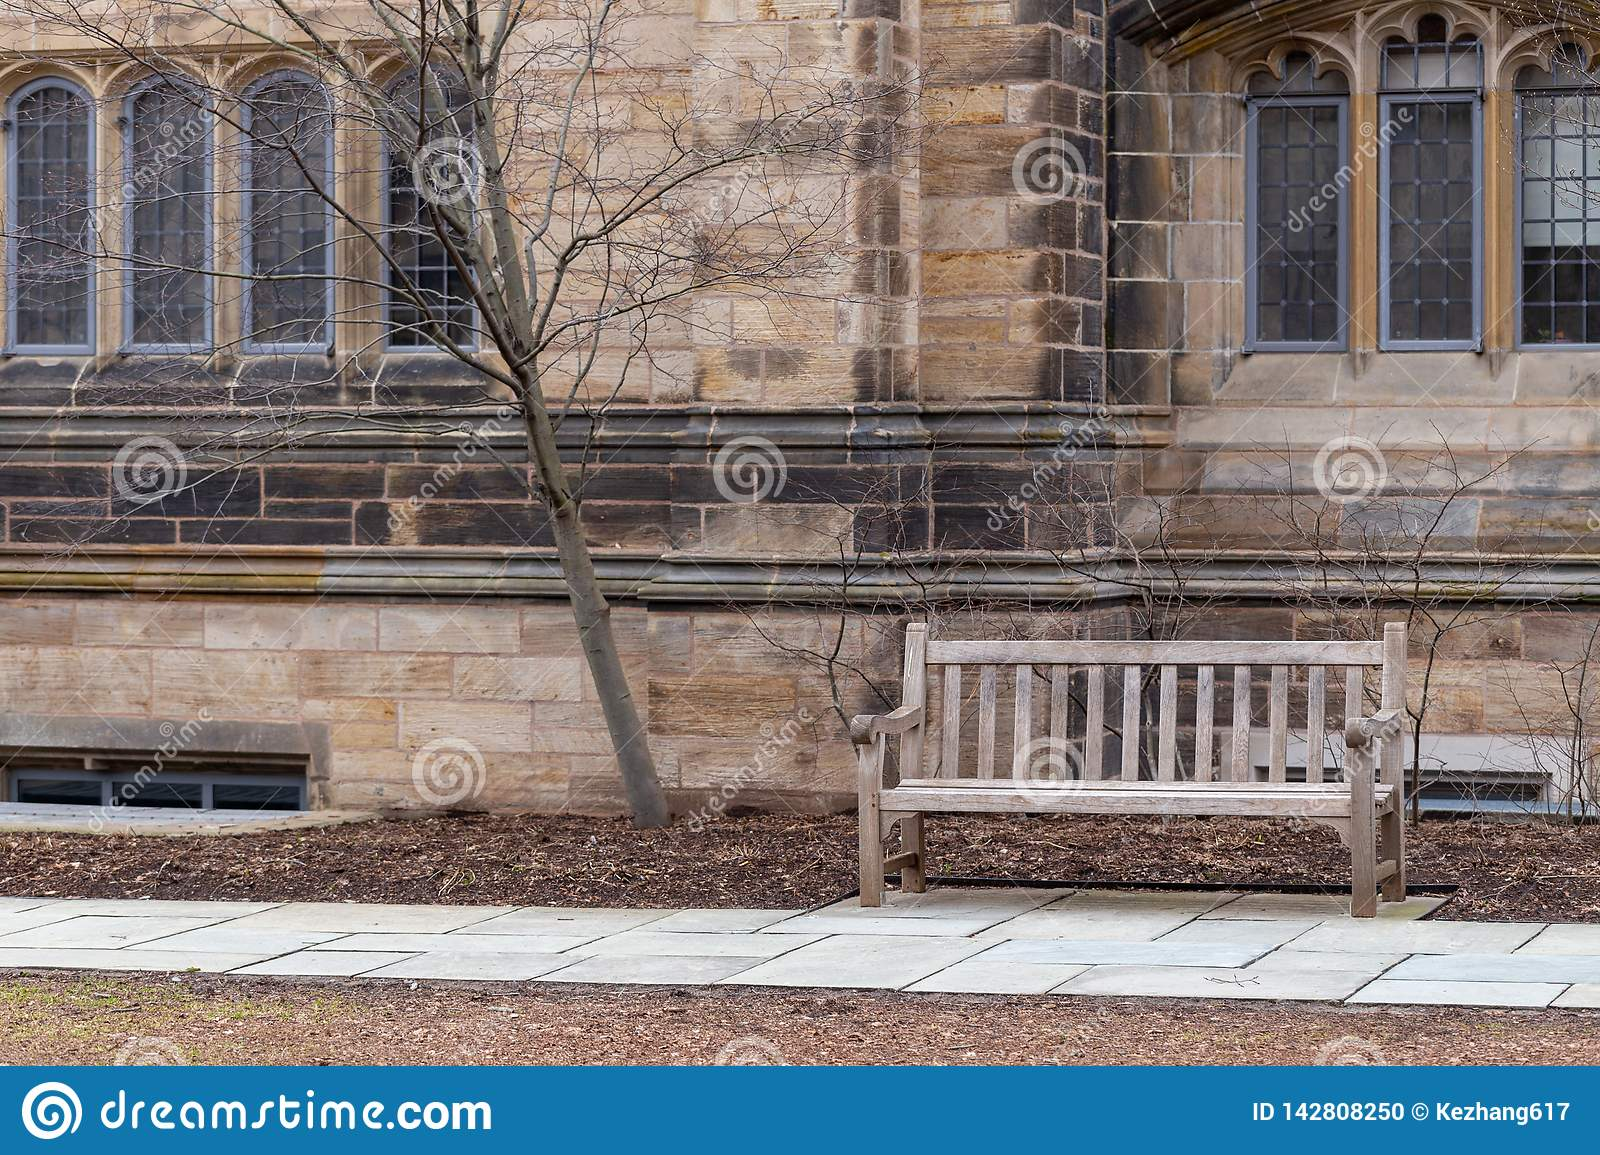 Bench on stone walkway against old decorative building